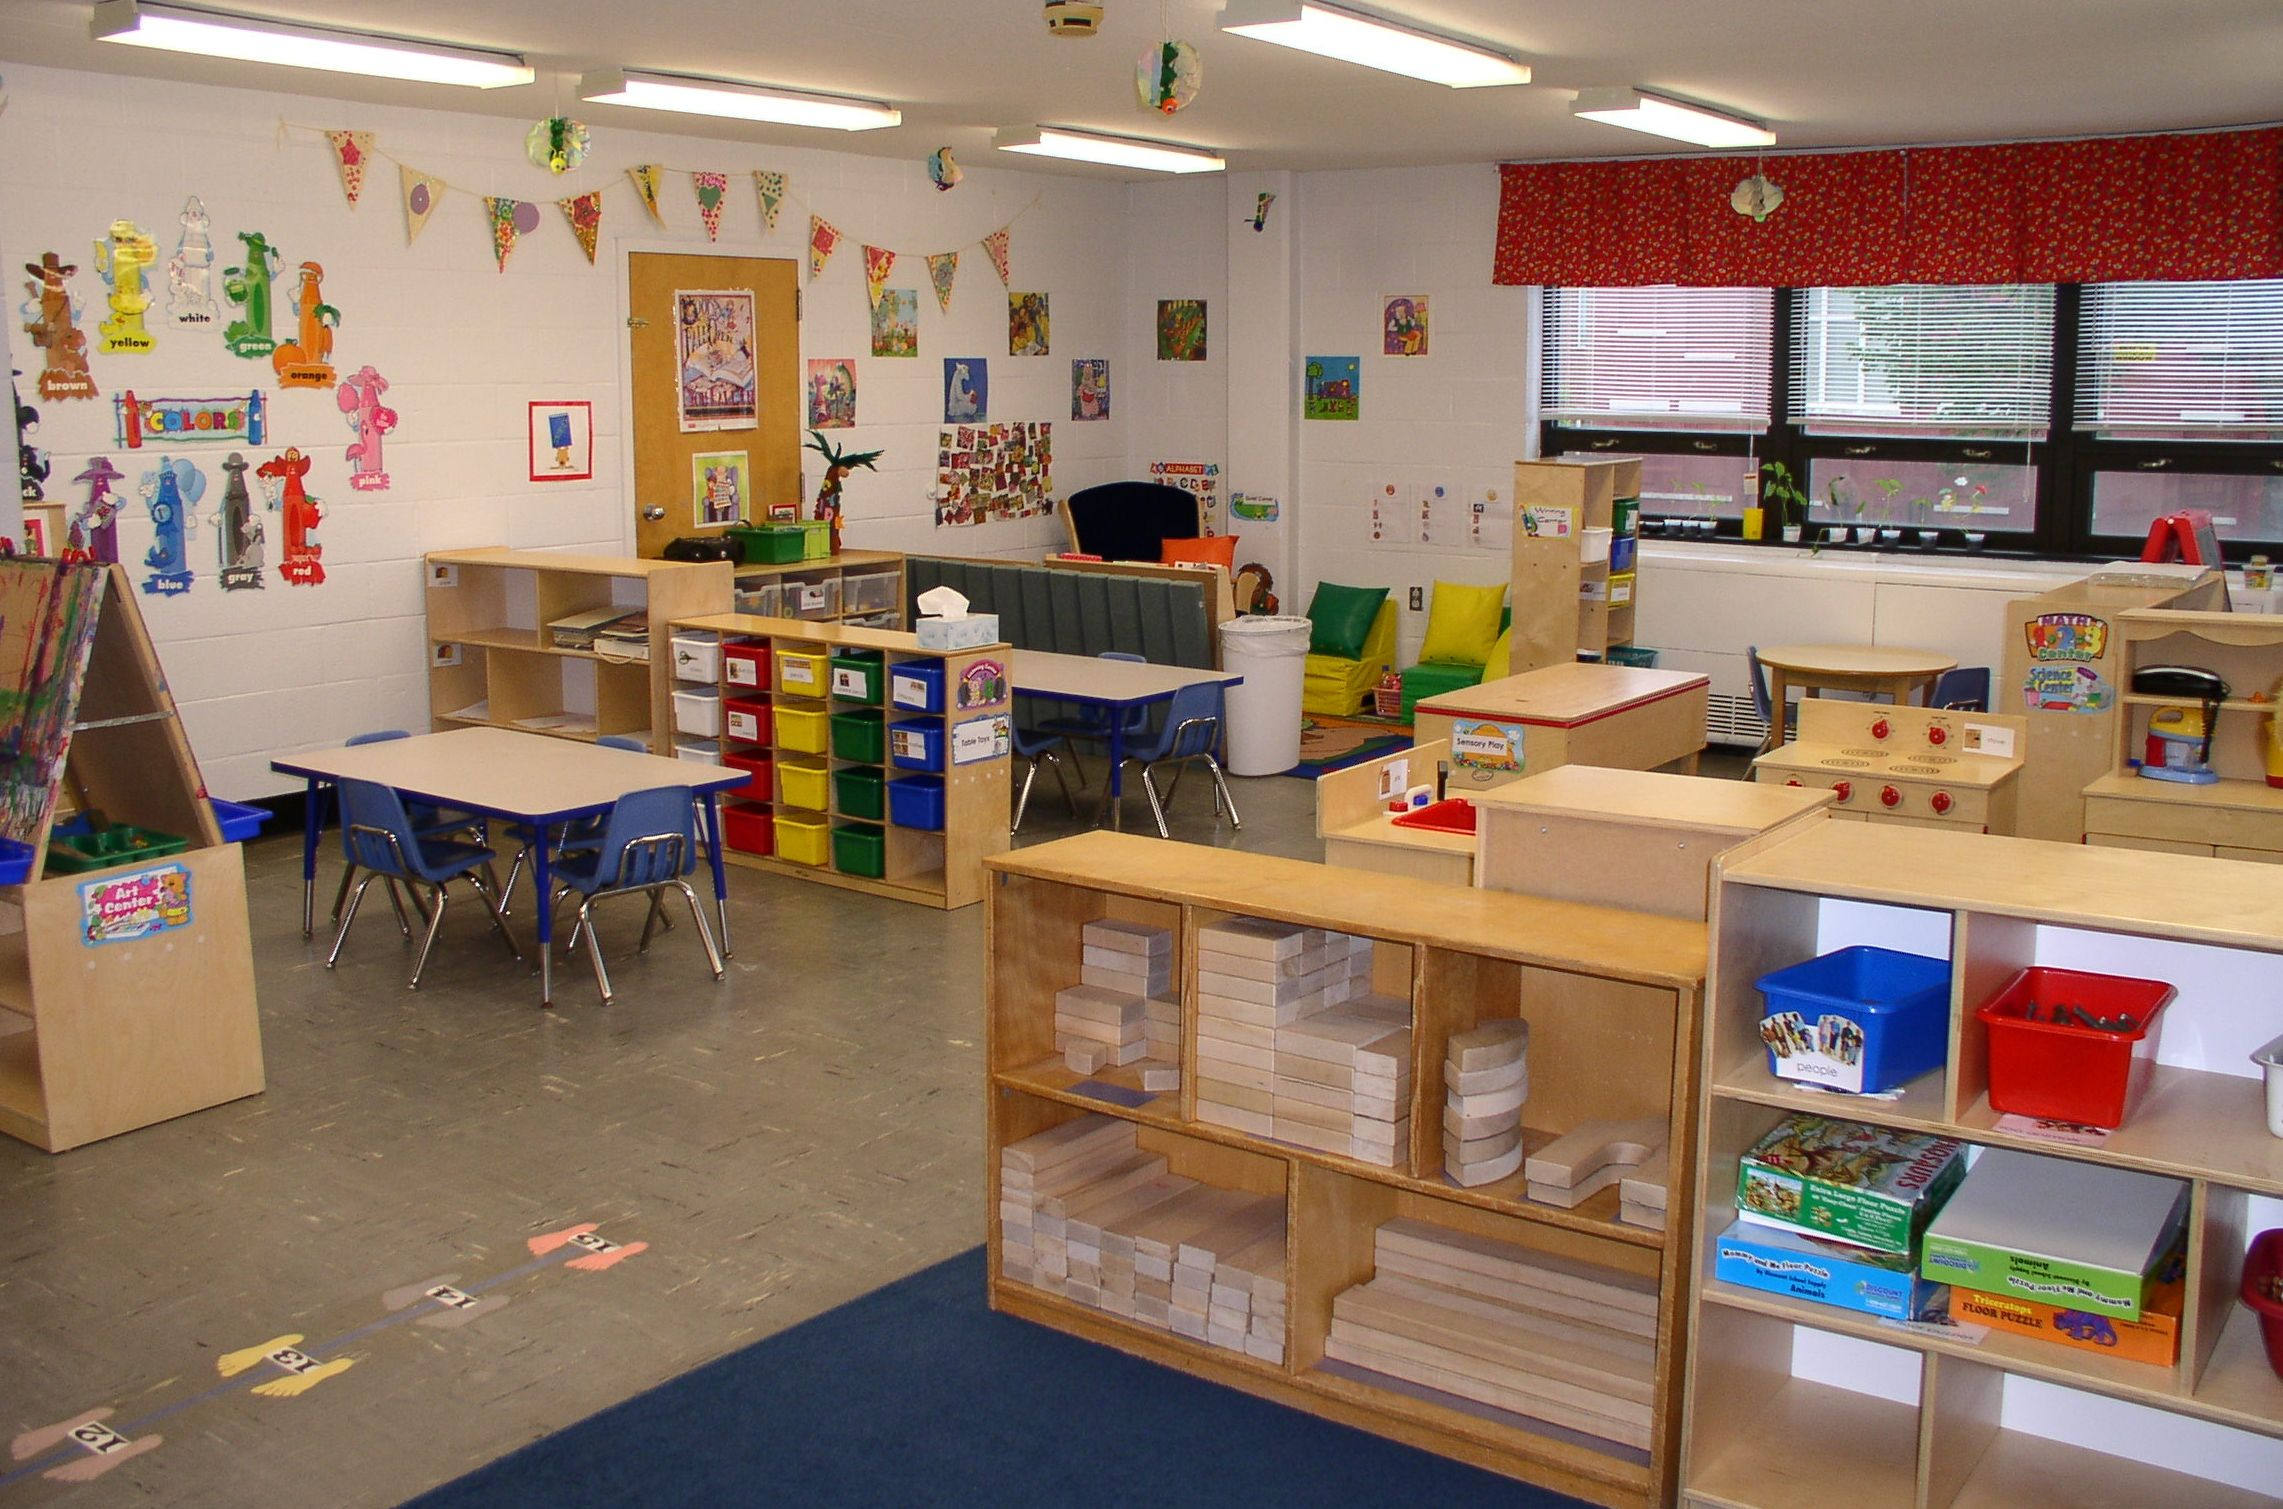 Design For A Preschool Classroom ~ Ywca elmira nice layout classroom designs for